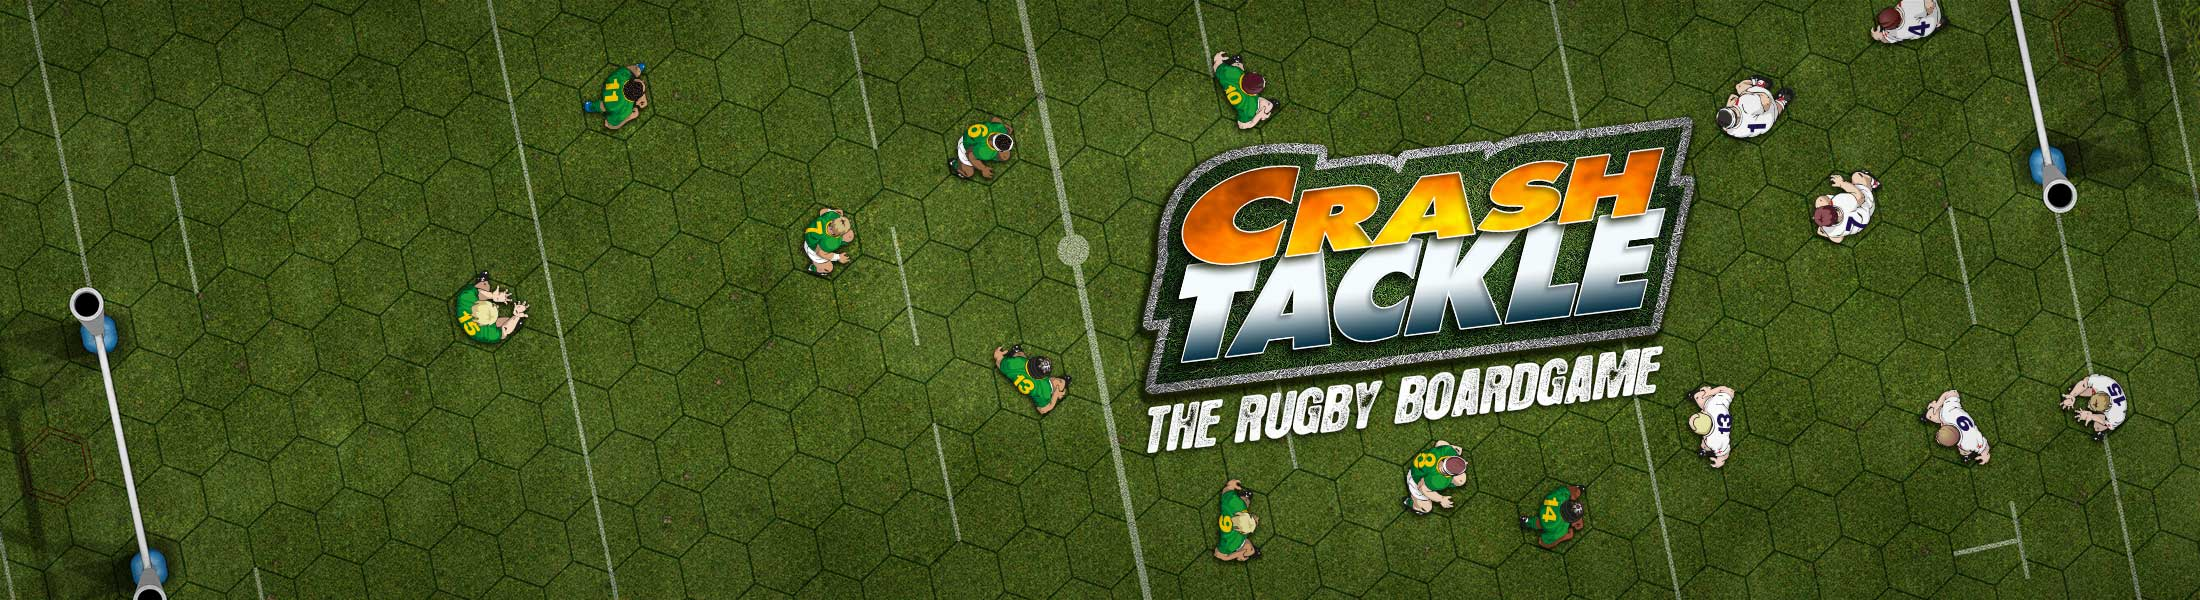 Crash-Tackle-new-field.jpg